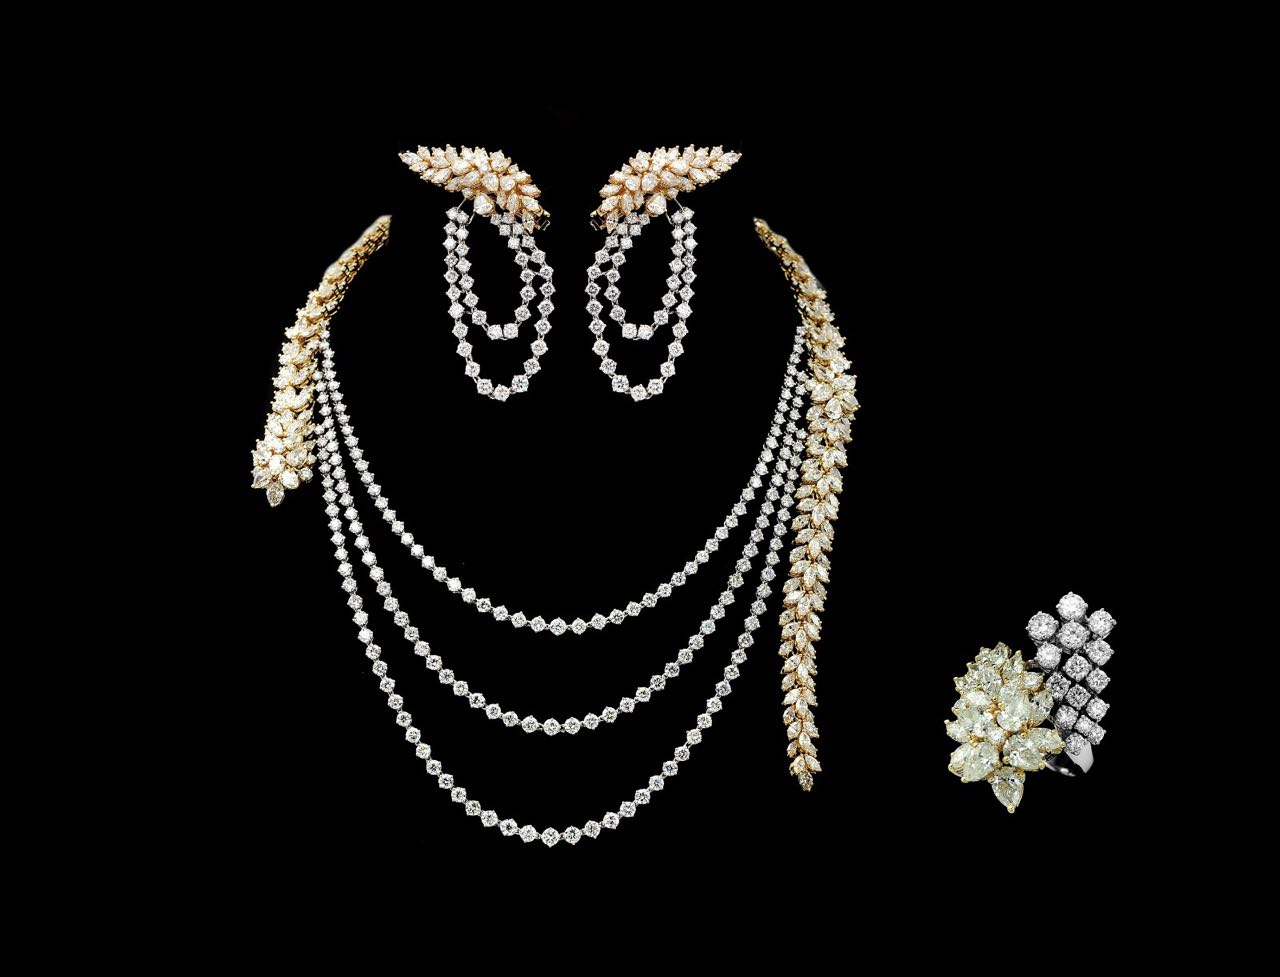 Contemporary diamond necklace, earrings and ring set